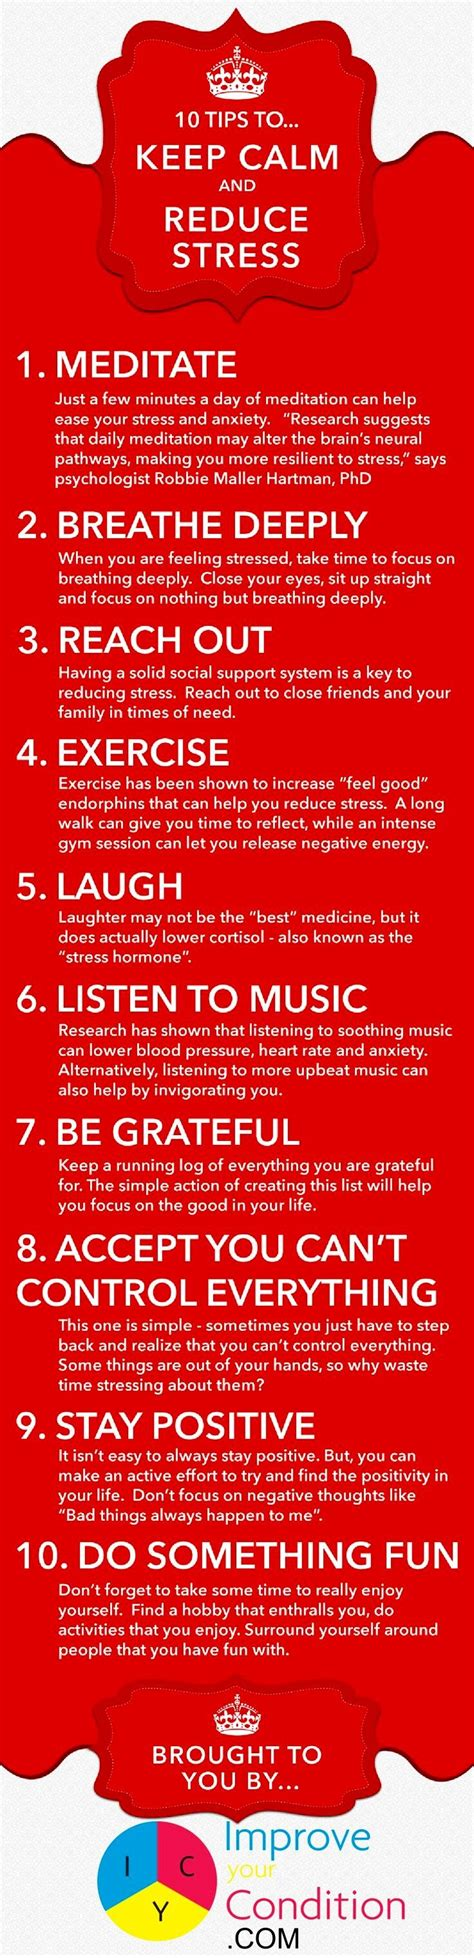 10 Tips To Keep Calm & Reduce Stress 1  Meditate Just A Few Minutes A Day Quotesstory